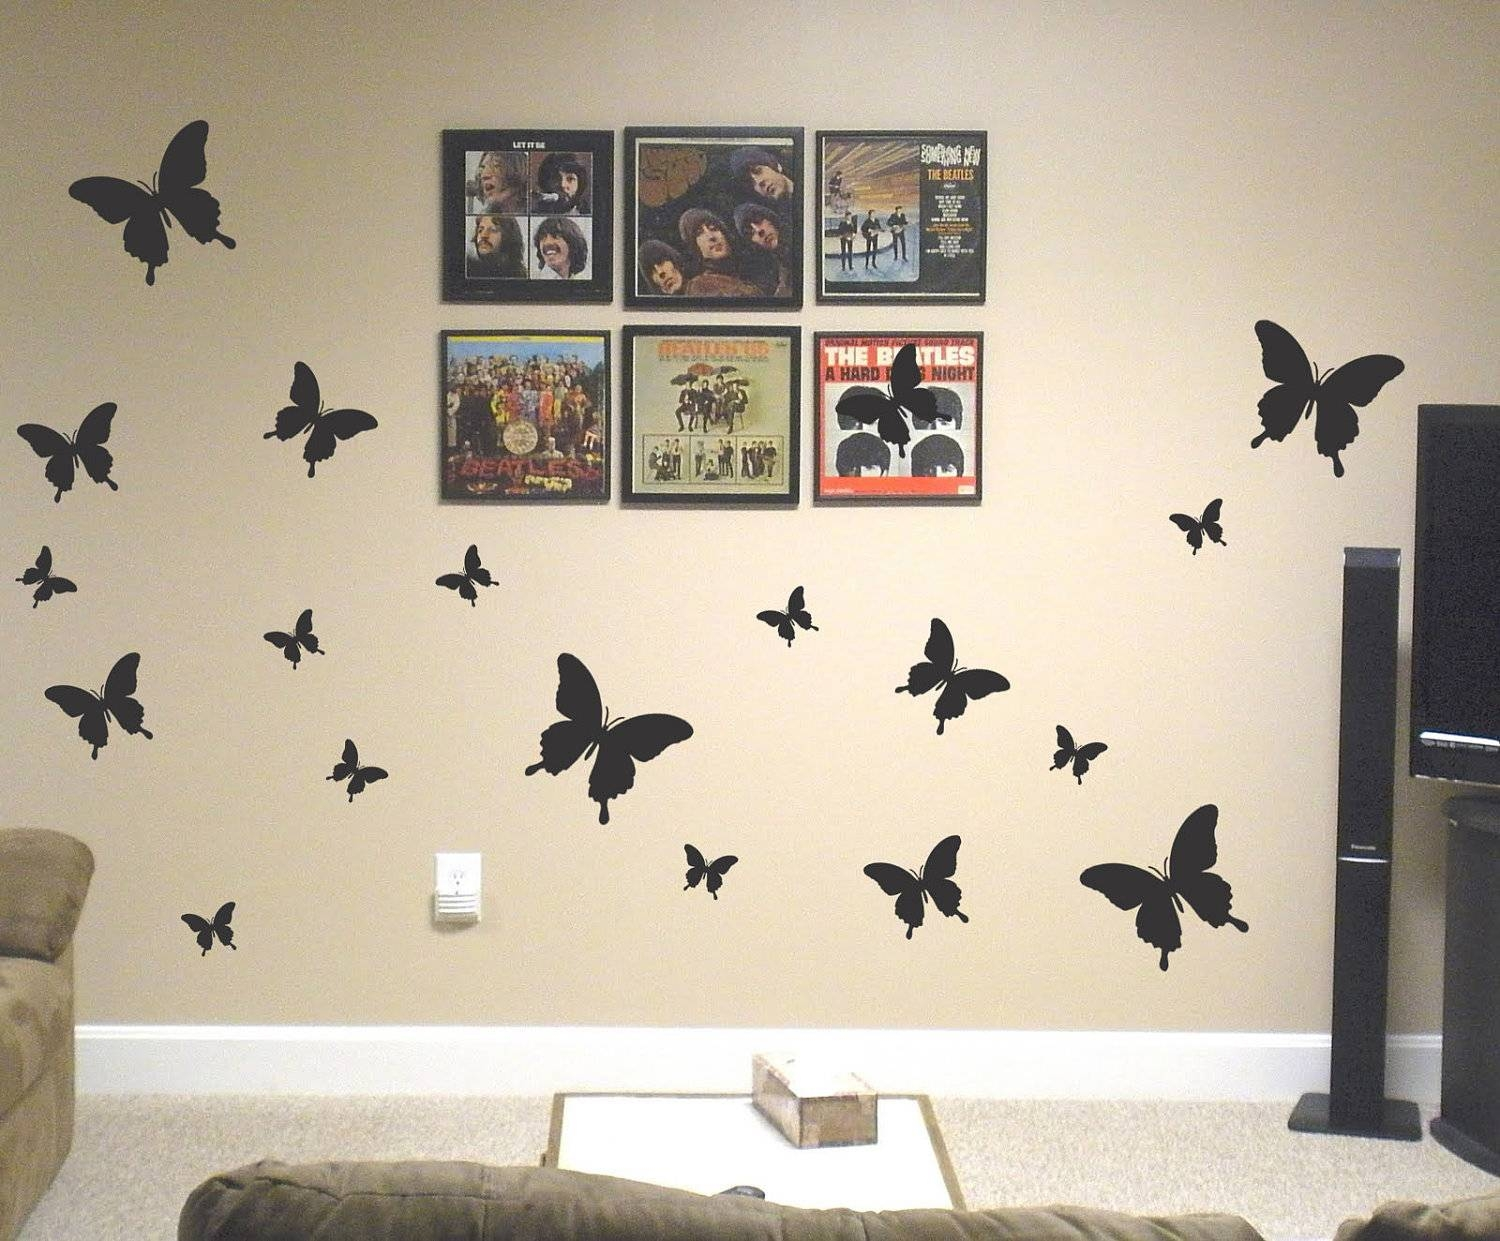 Butterfly Wall Art Decals | Wallartideas In Best And Newest Wetherill Park 3D Wall Art (View 6 of 20)